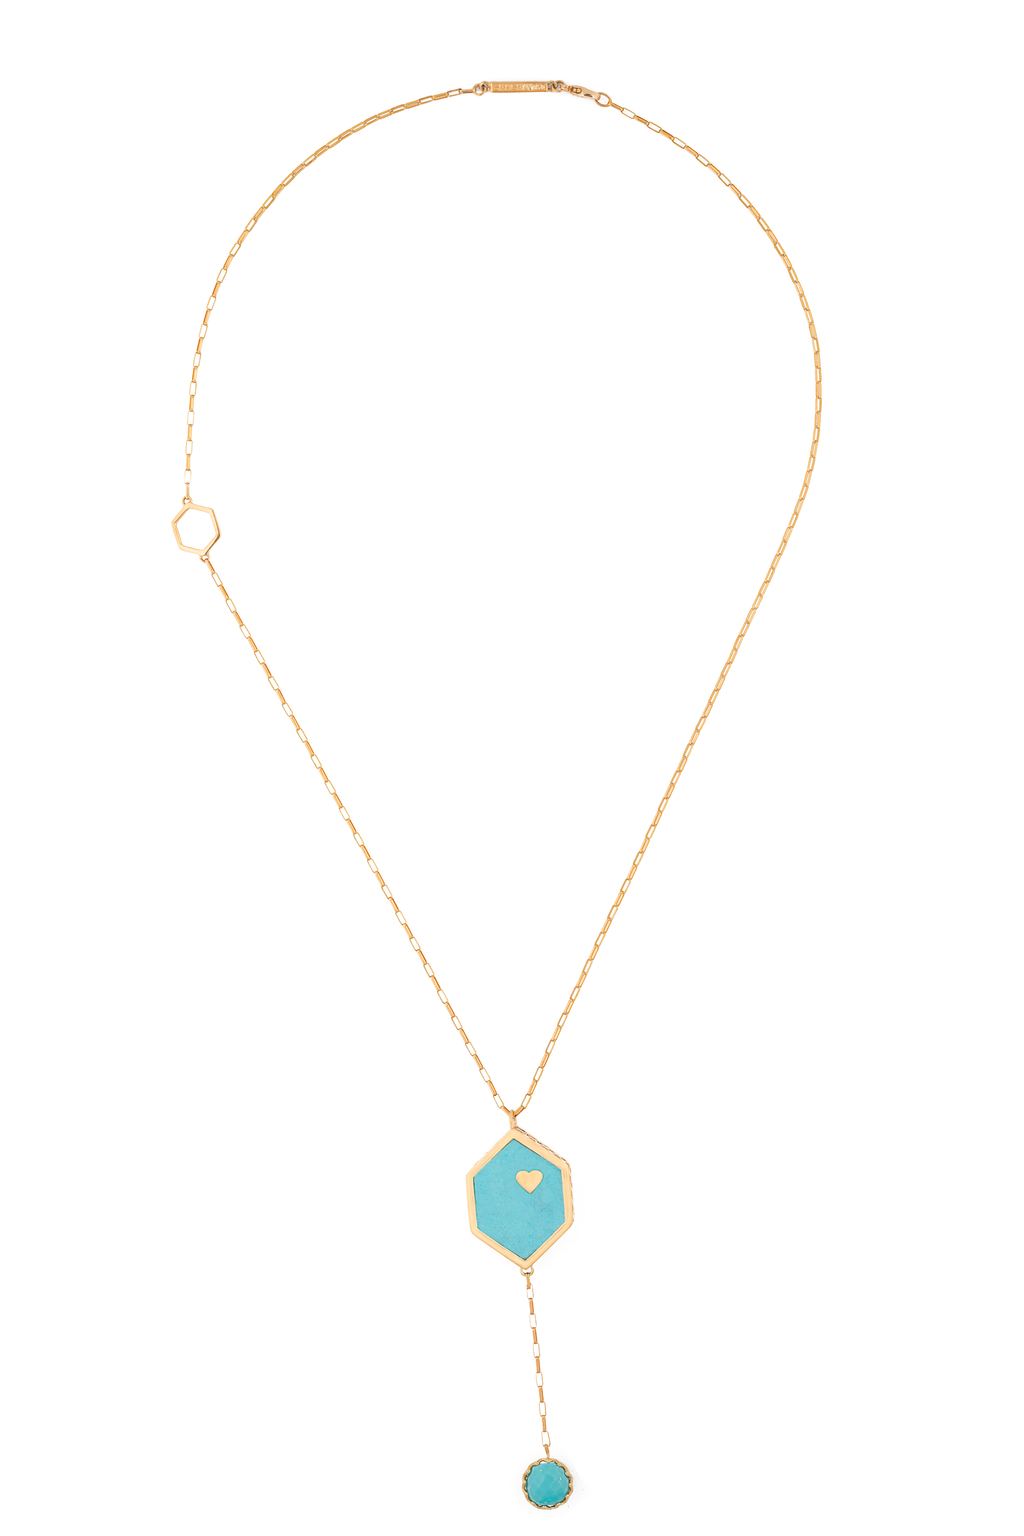 Double Sided Turquoise + Diamond Hex Necklace